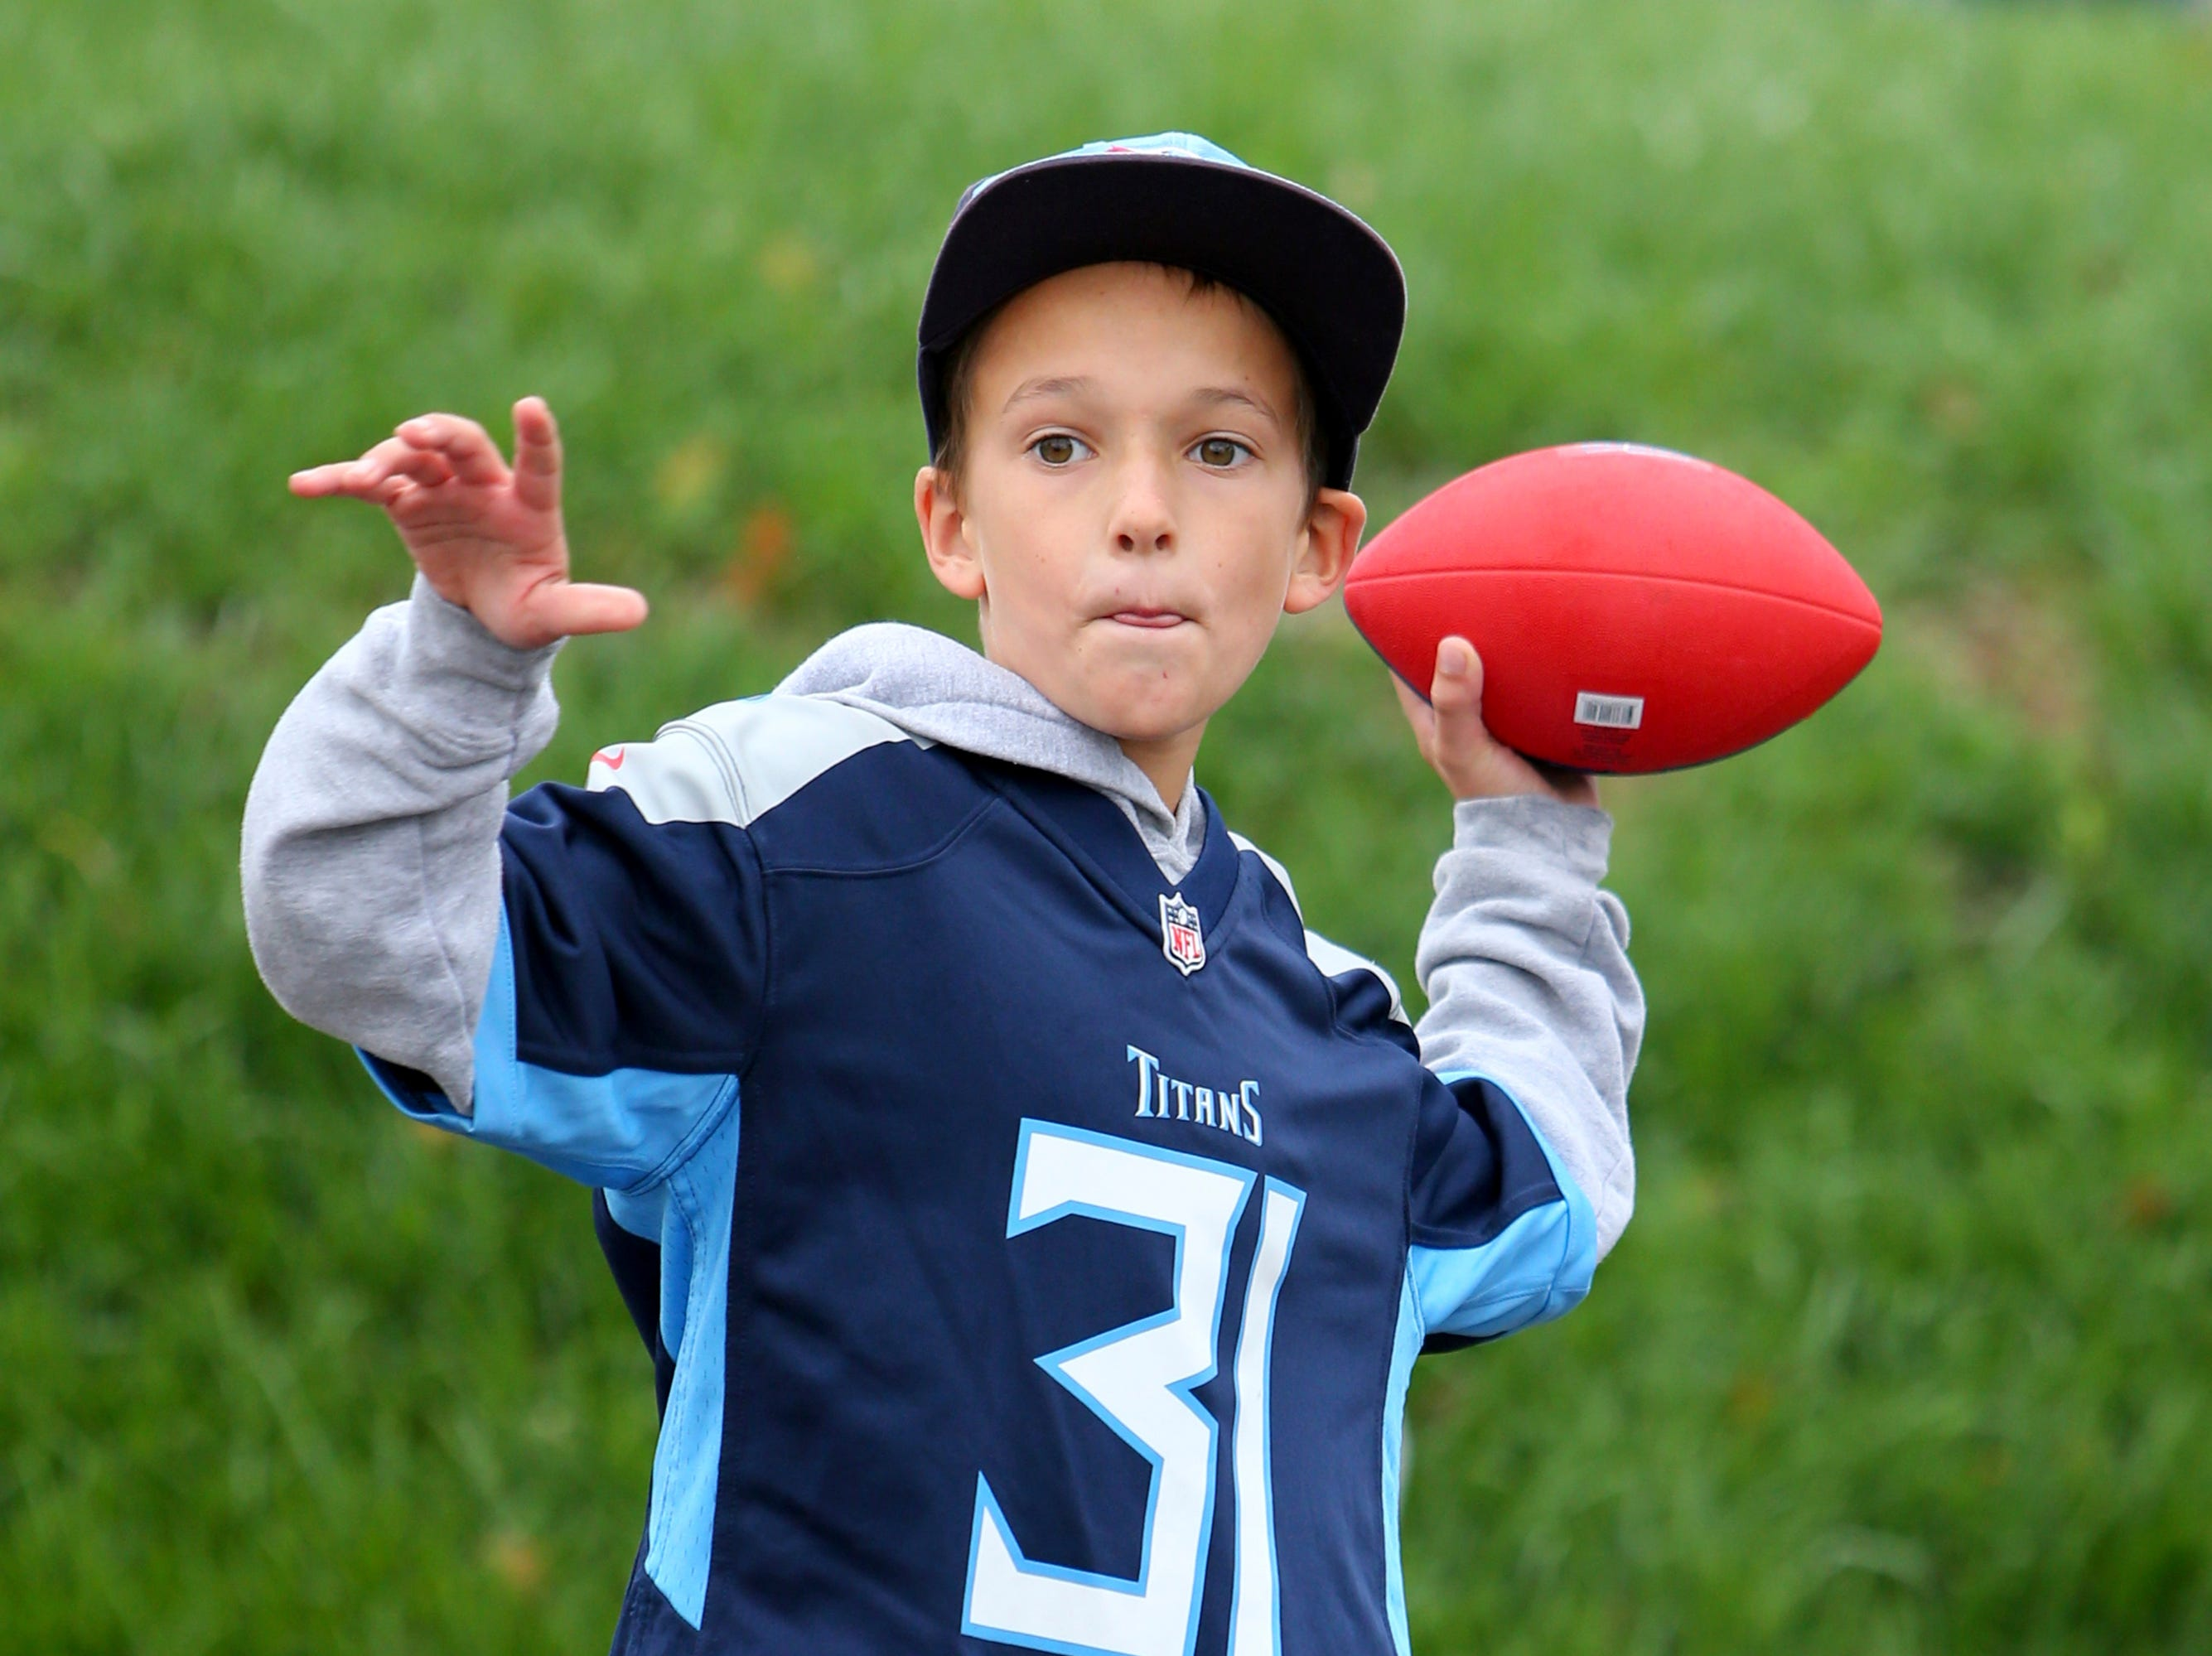 Wyatt Brockman, of Nashville, Tenn., throws a football while tailgating at New Era Field prior to an NFL football game between the Buffalo Bills and the Tennessee Titans, Sunday, Oct. 7, 2018, in Orchard Park, N.Y. (AP Photo/Jeffrey T. Barnes)